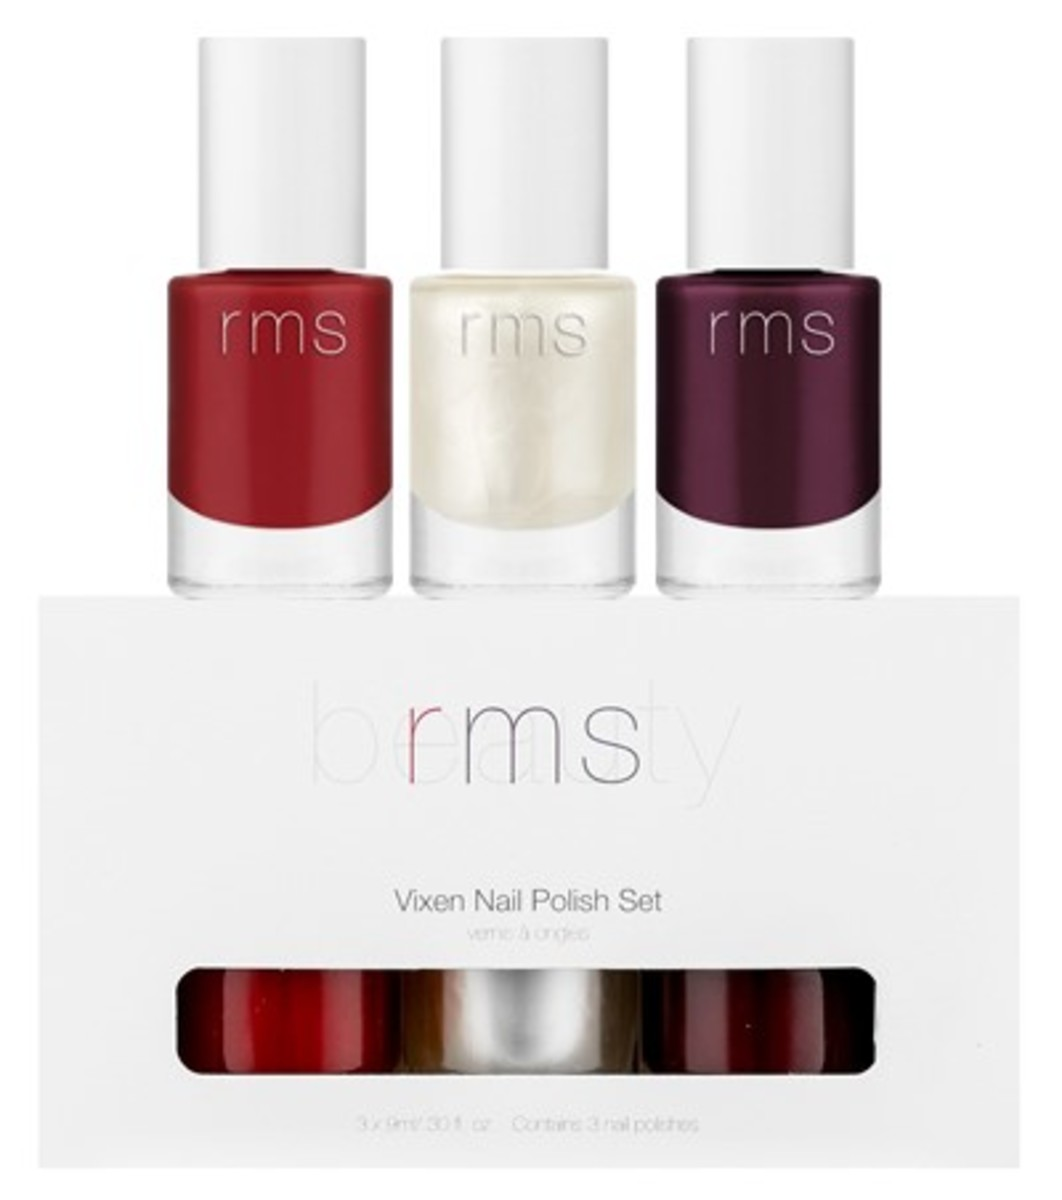 Gifts_RMS Beauty